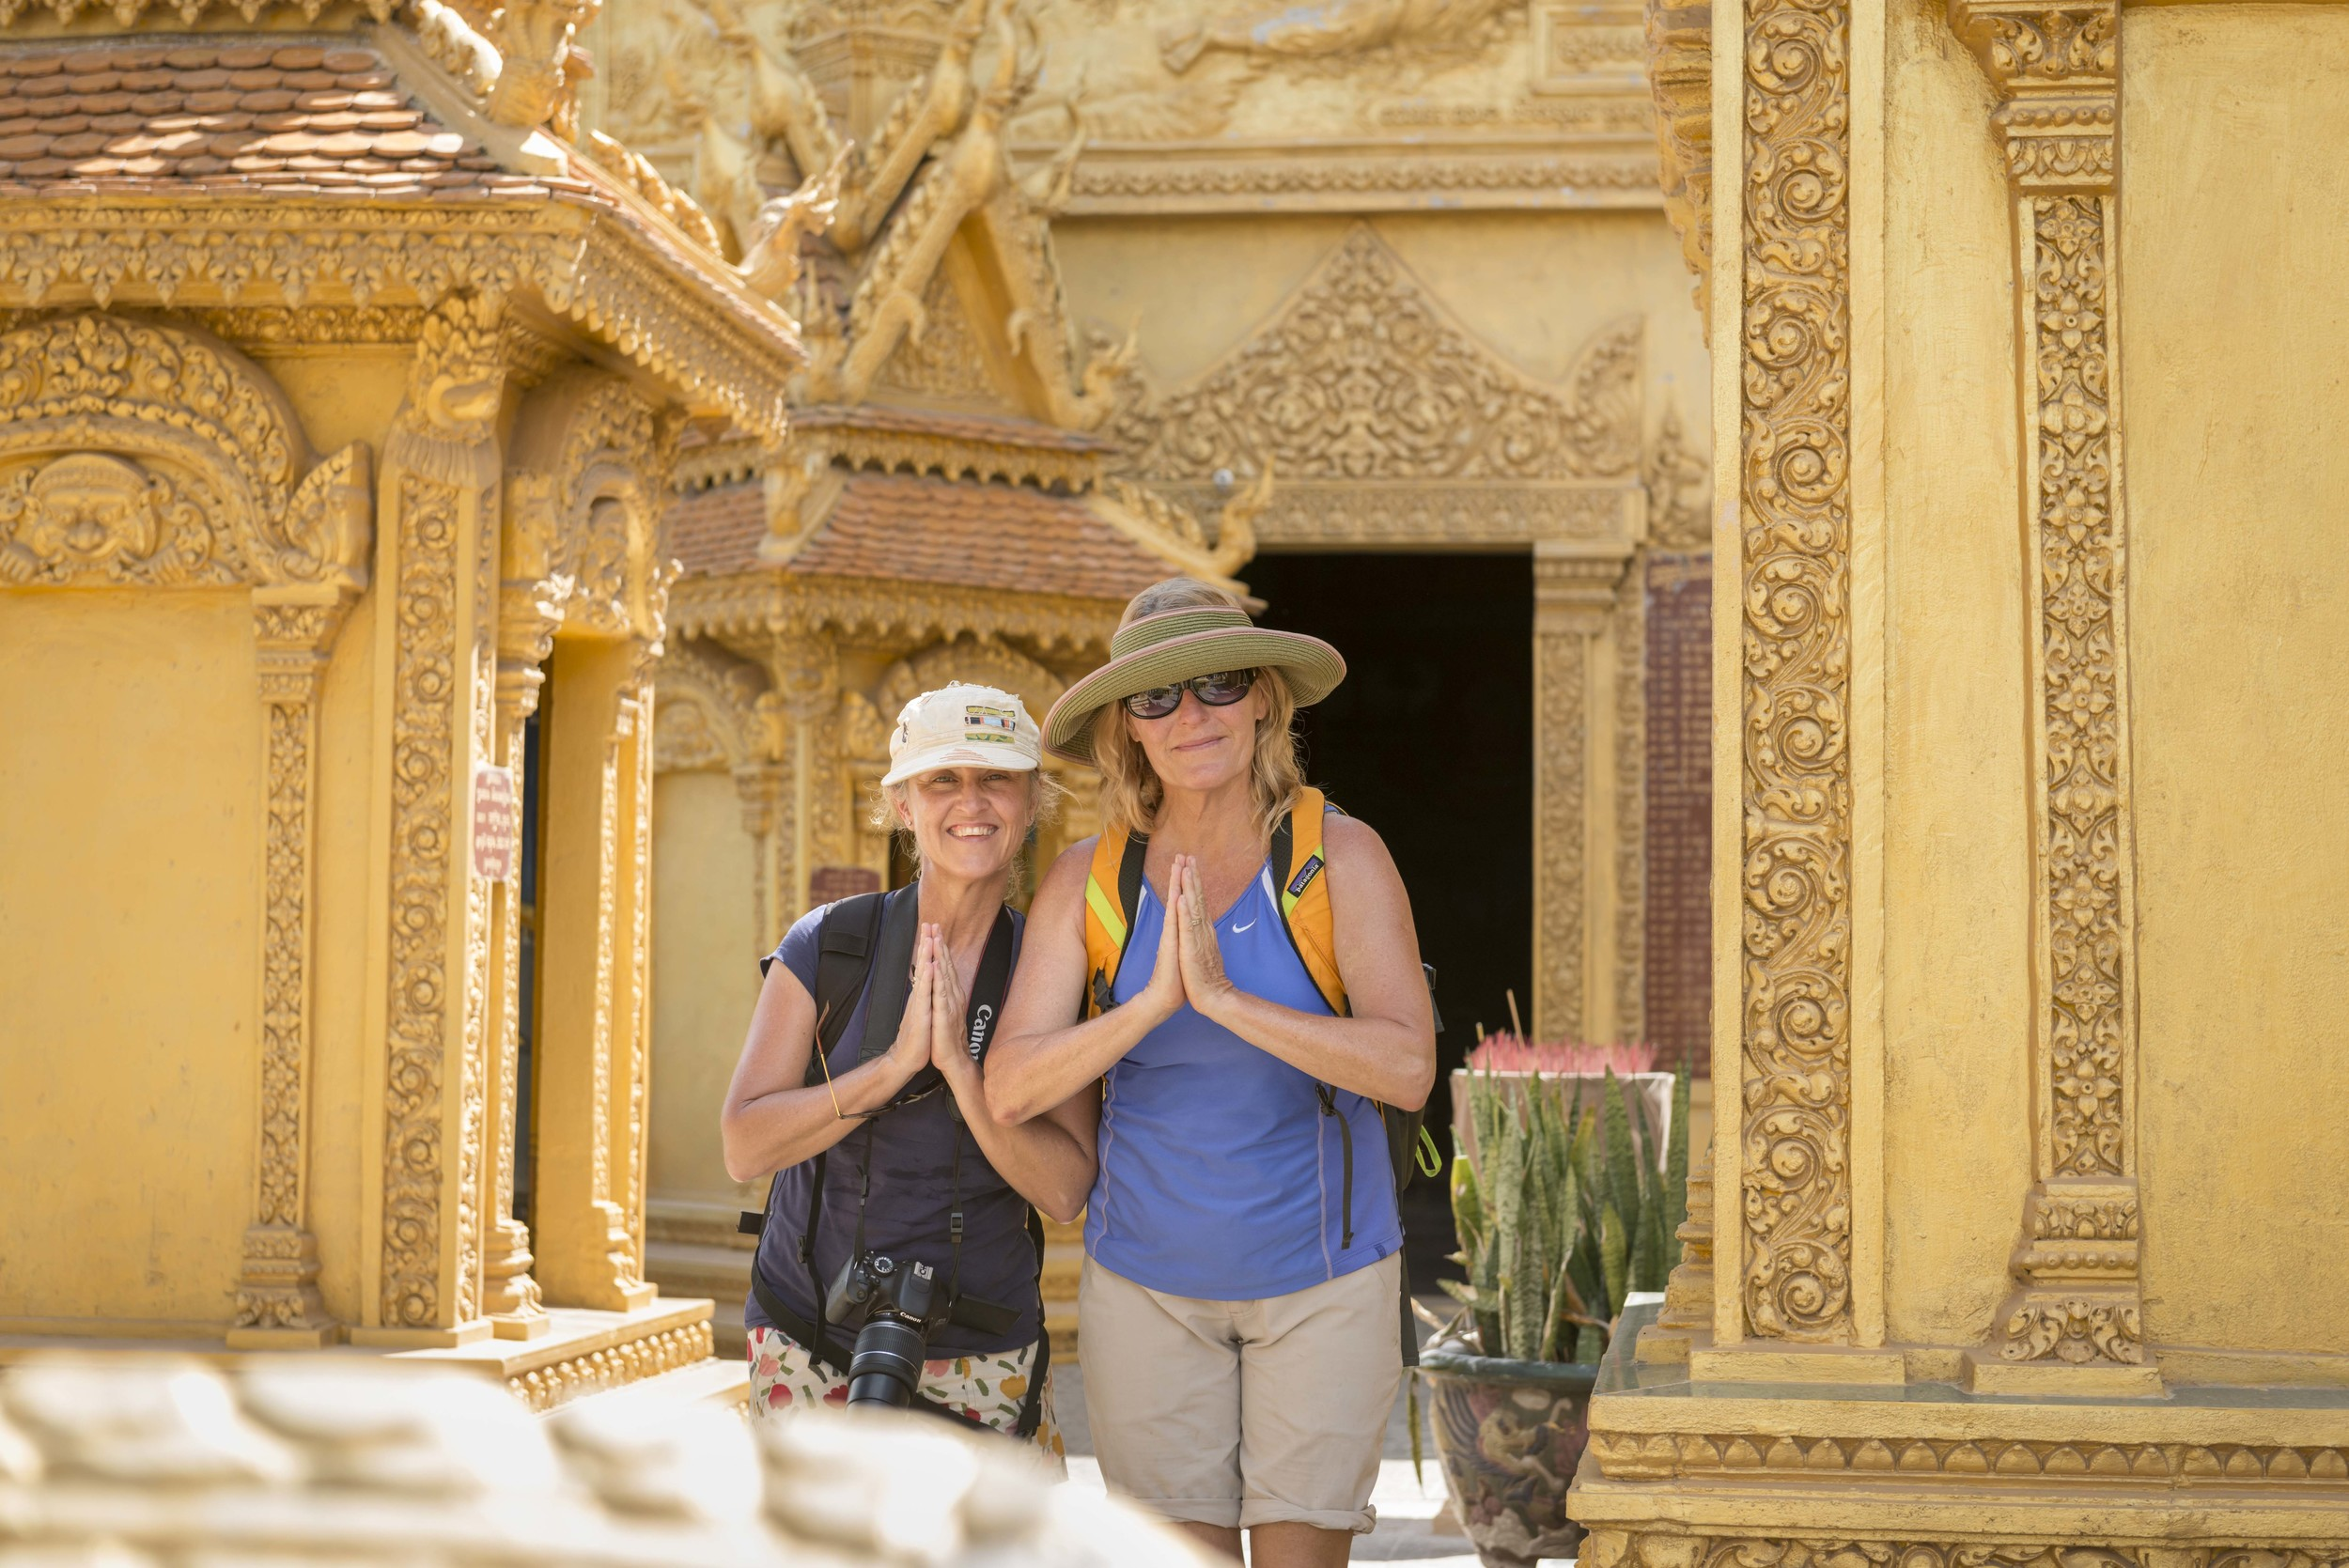 """ We had the best day. It was so great to get such an in-depth look at Khmer culture"" - Asha, Australia"